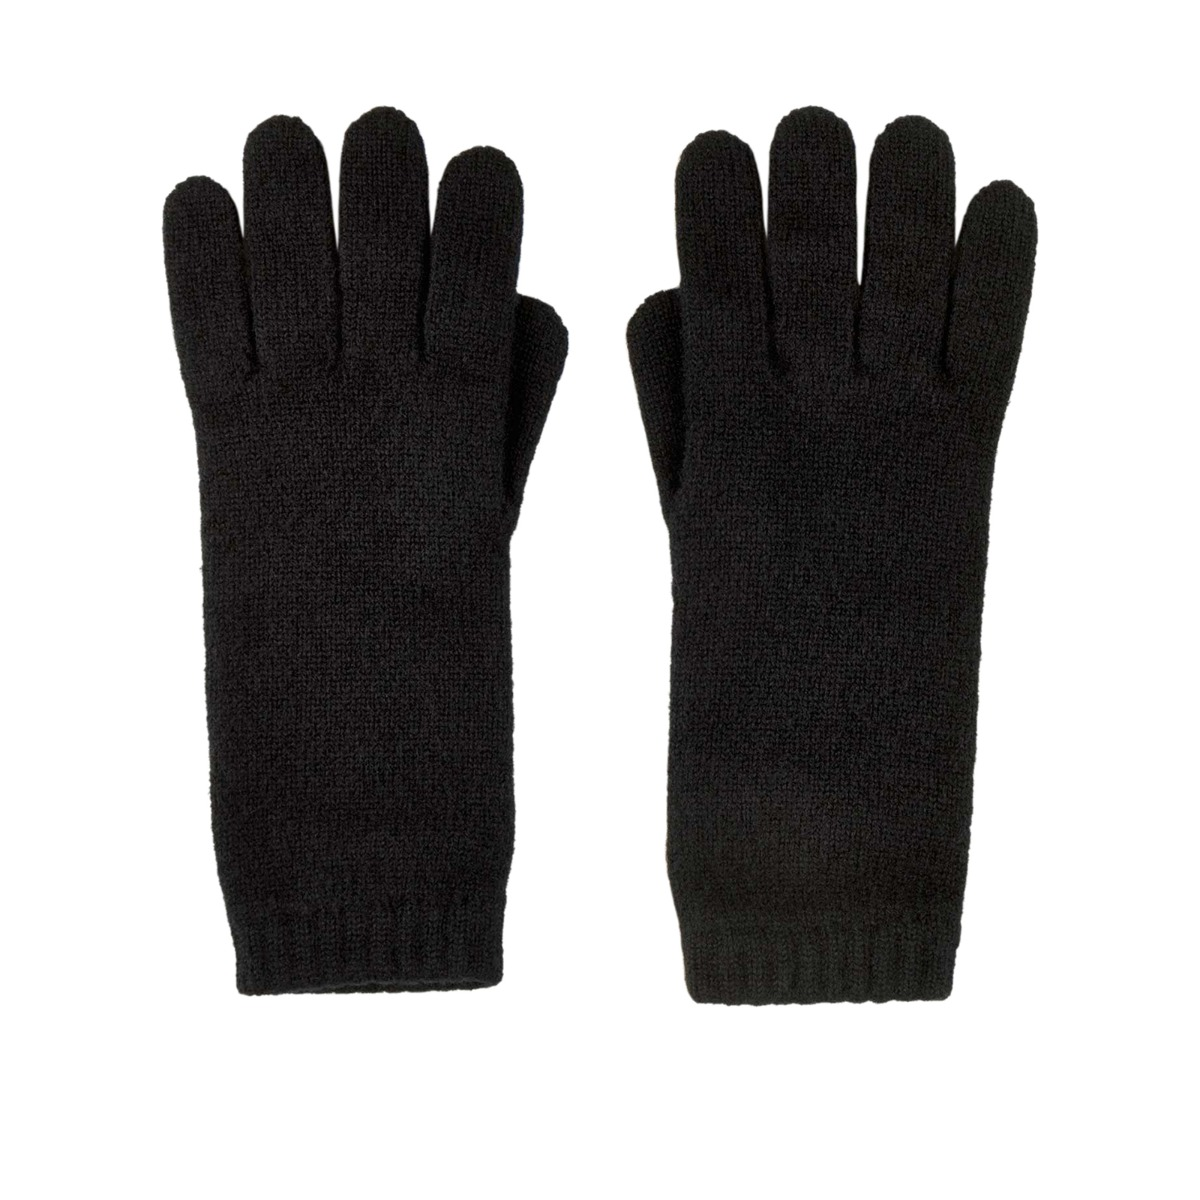 Black cashmere women's gloves